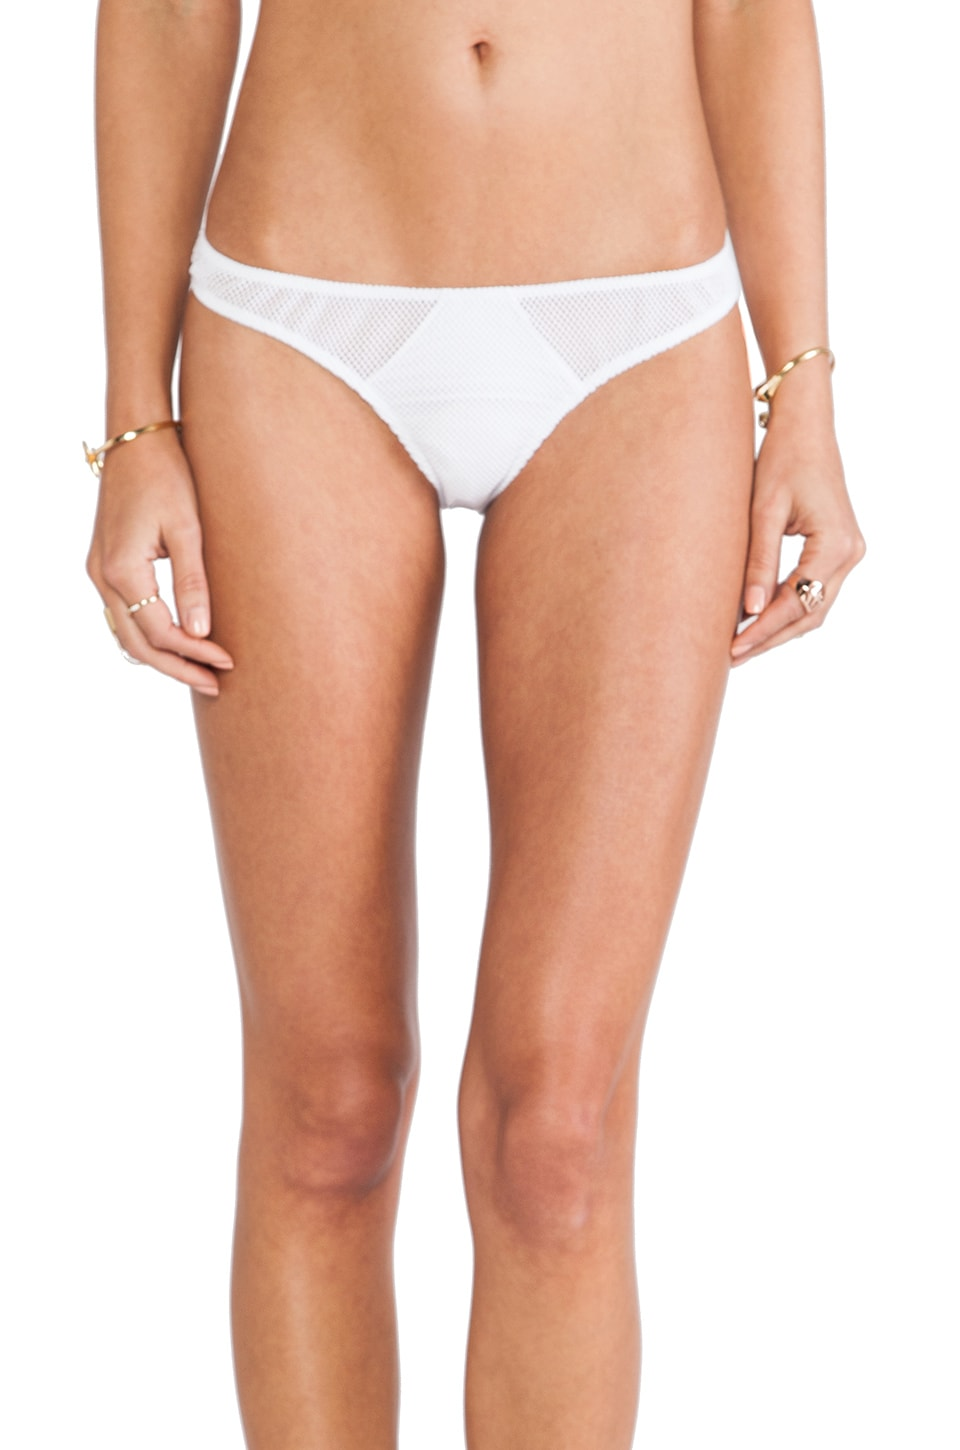 Tyler Rose Swimwear Jarret Cutout Mesh Bottom in White